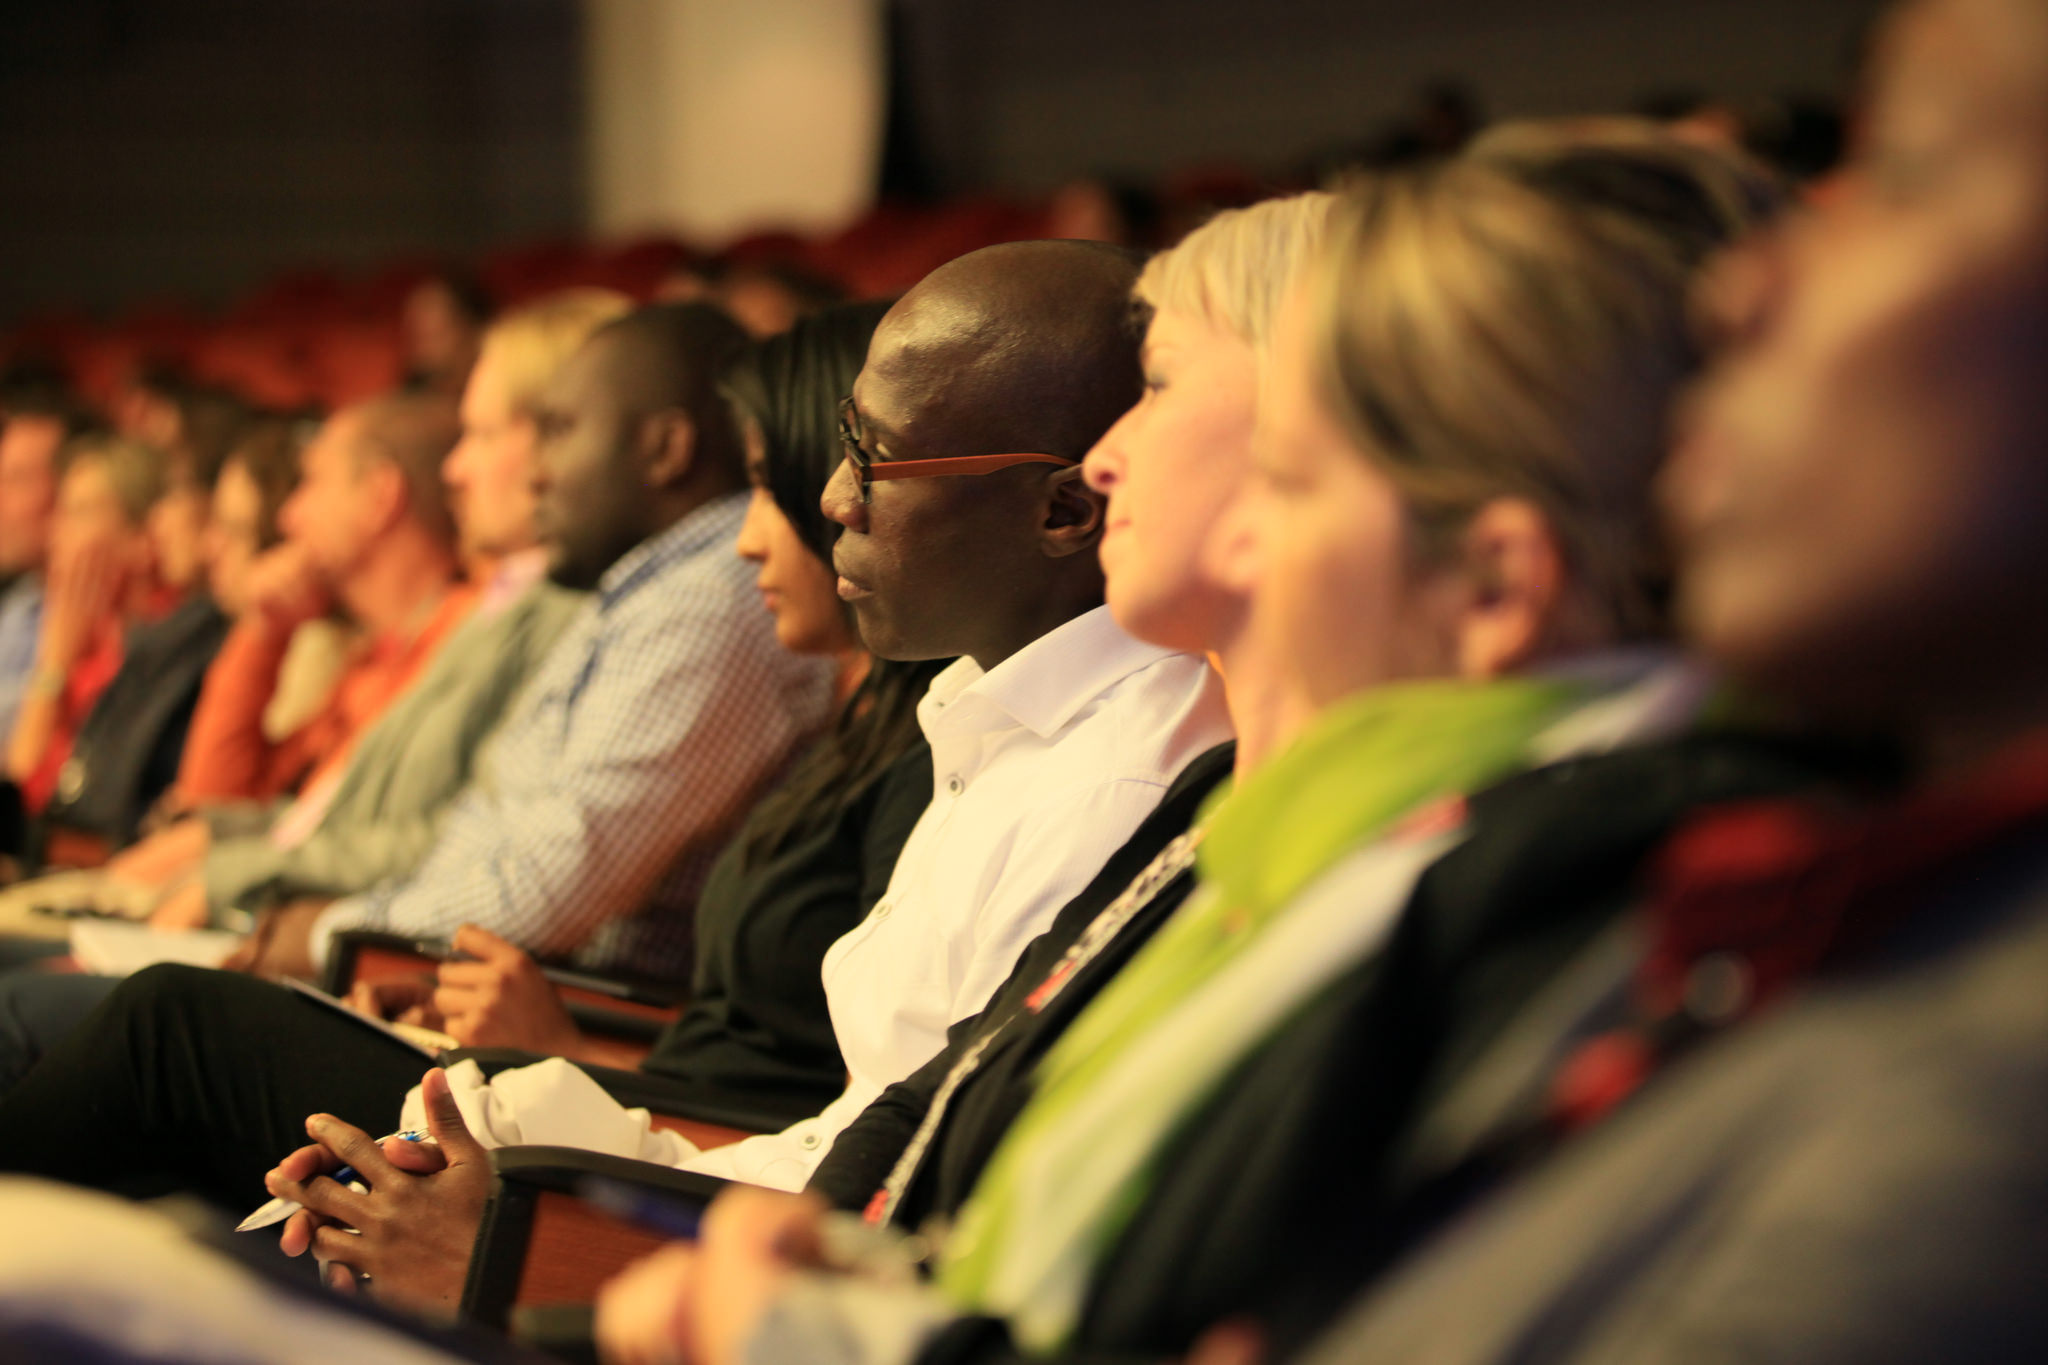 The audience at TEDxJohannesburg sites rapt during a talk. Photo: TEDxJoahnnesburg